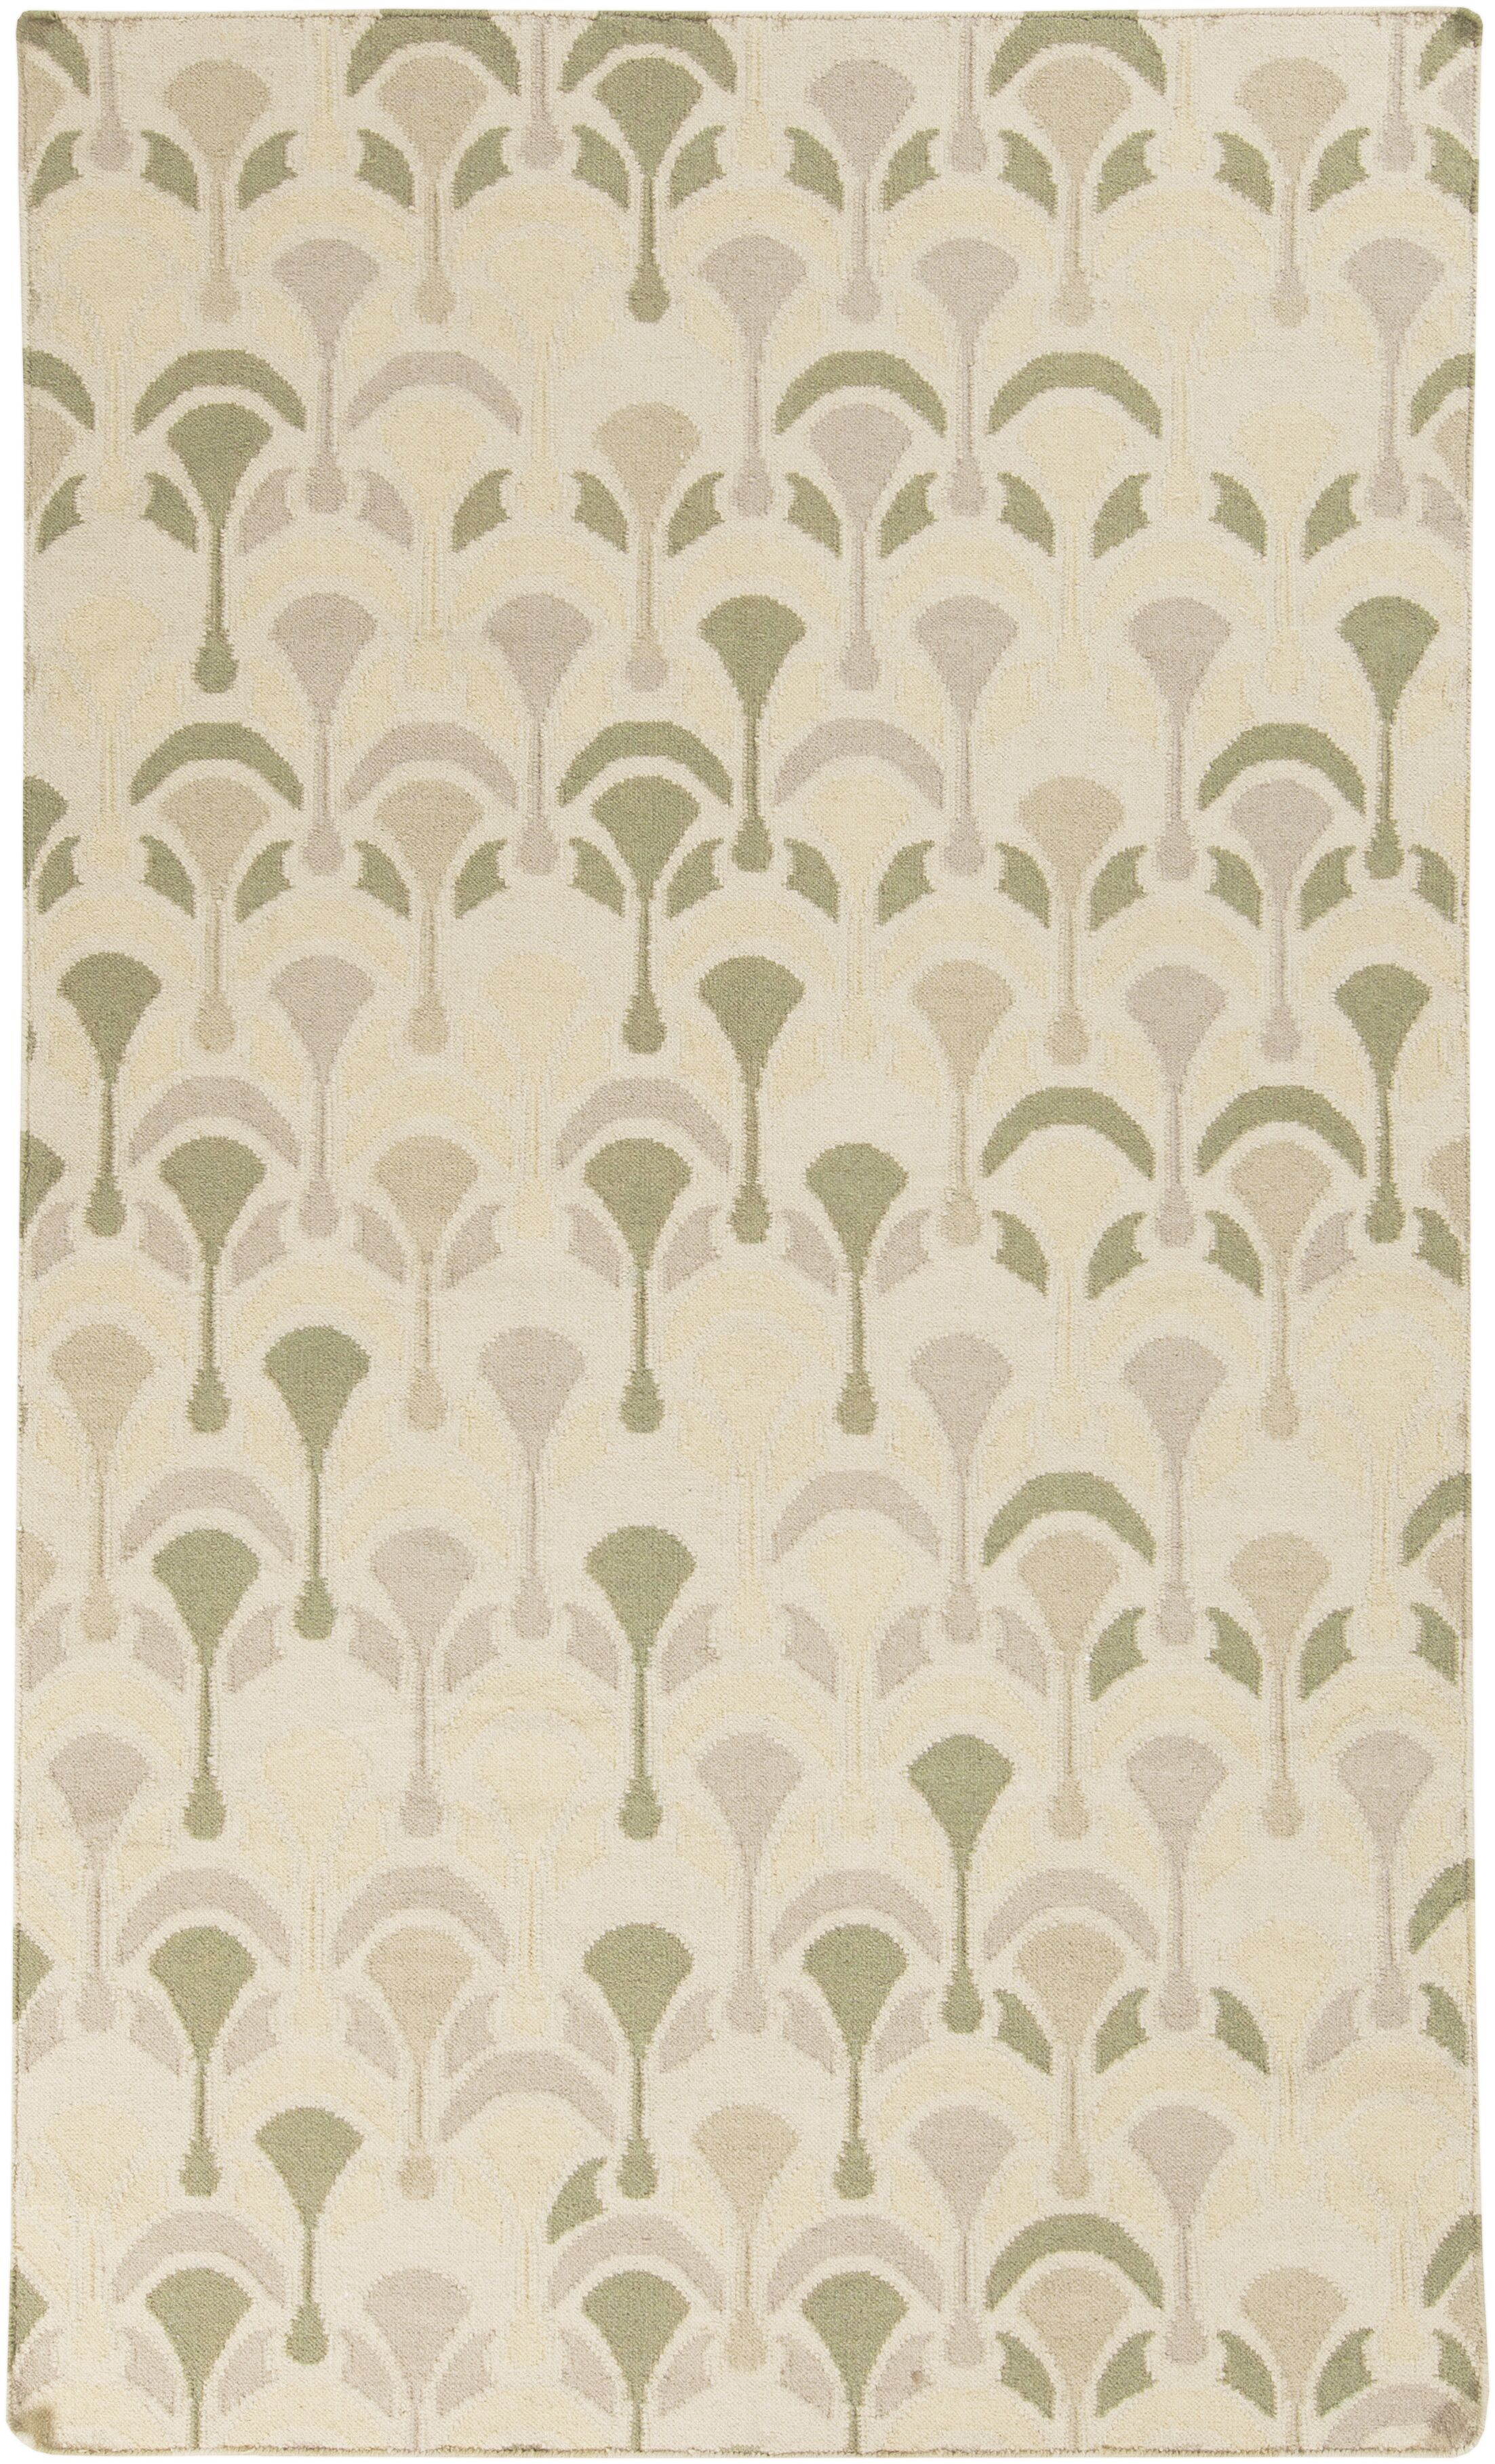 Voyages Olive Geometric Area Rug Rug Size: Rectangle 5' x 8'